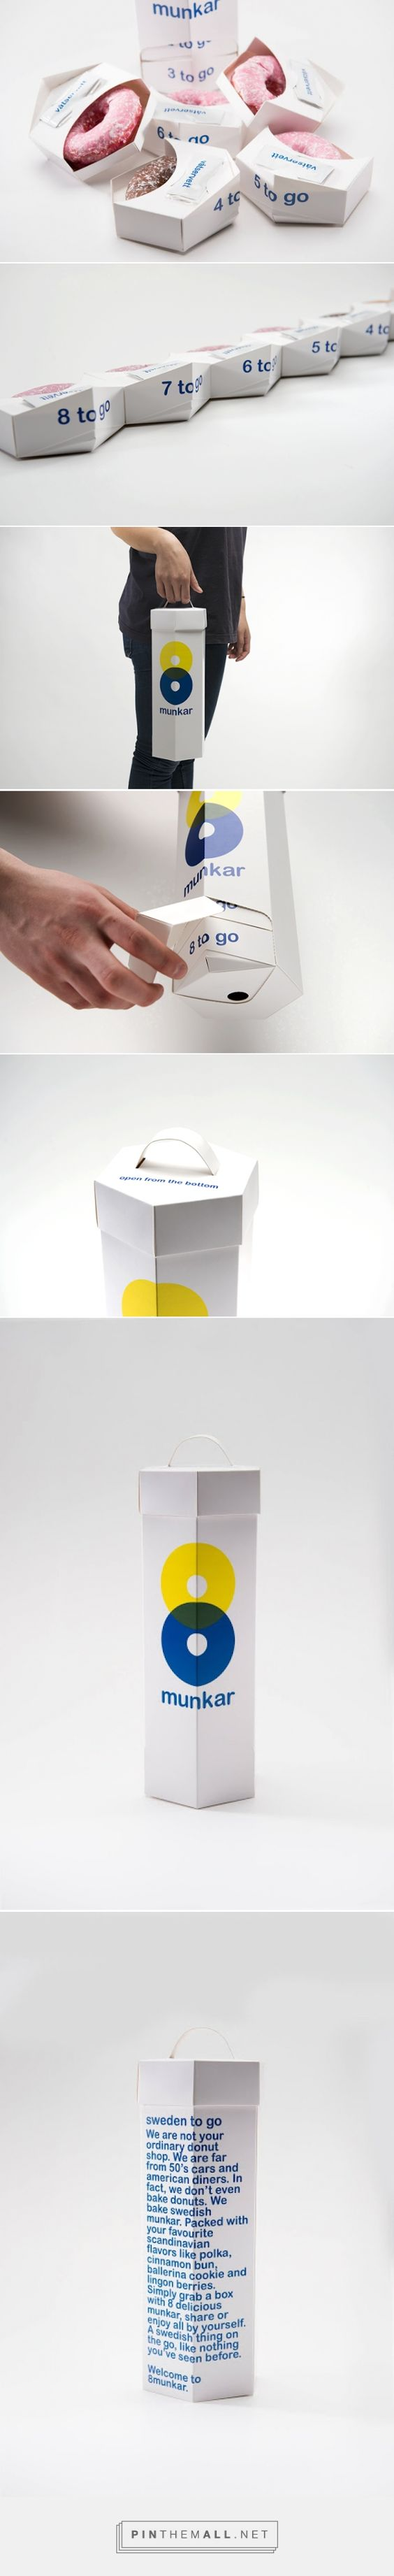 Favourite Functional Printed Packaging Design